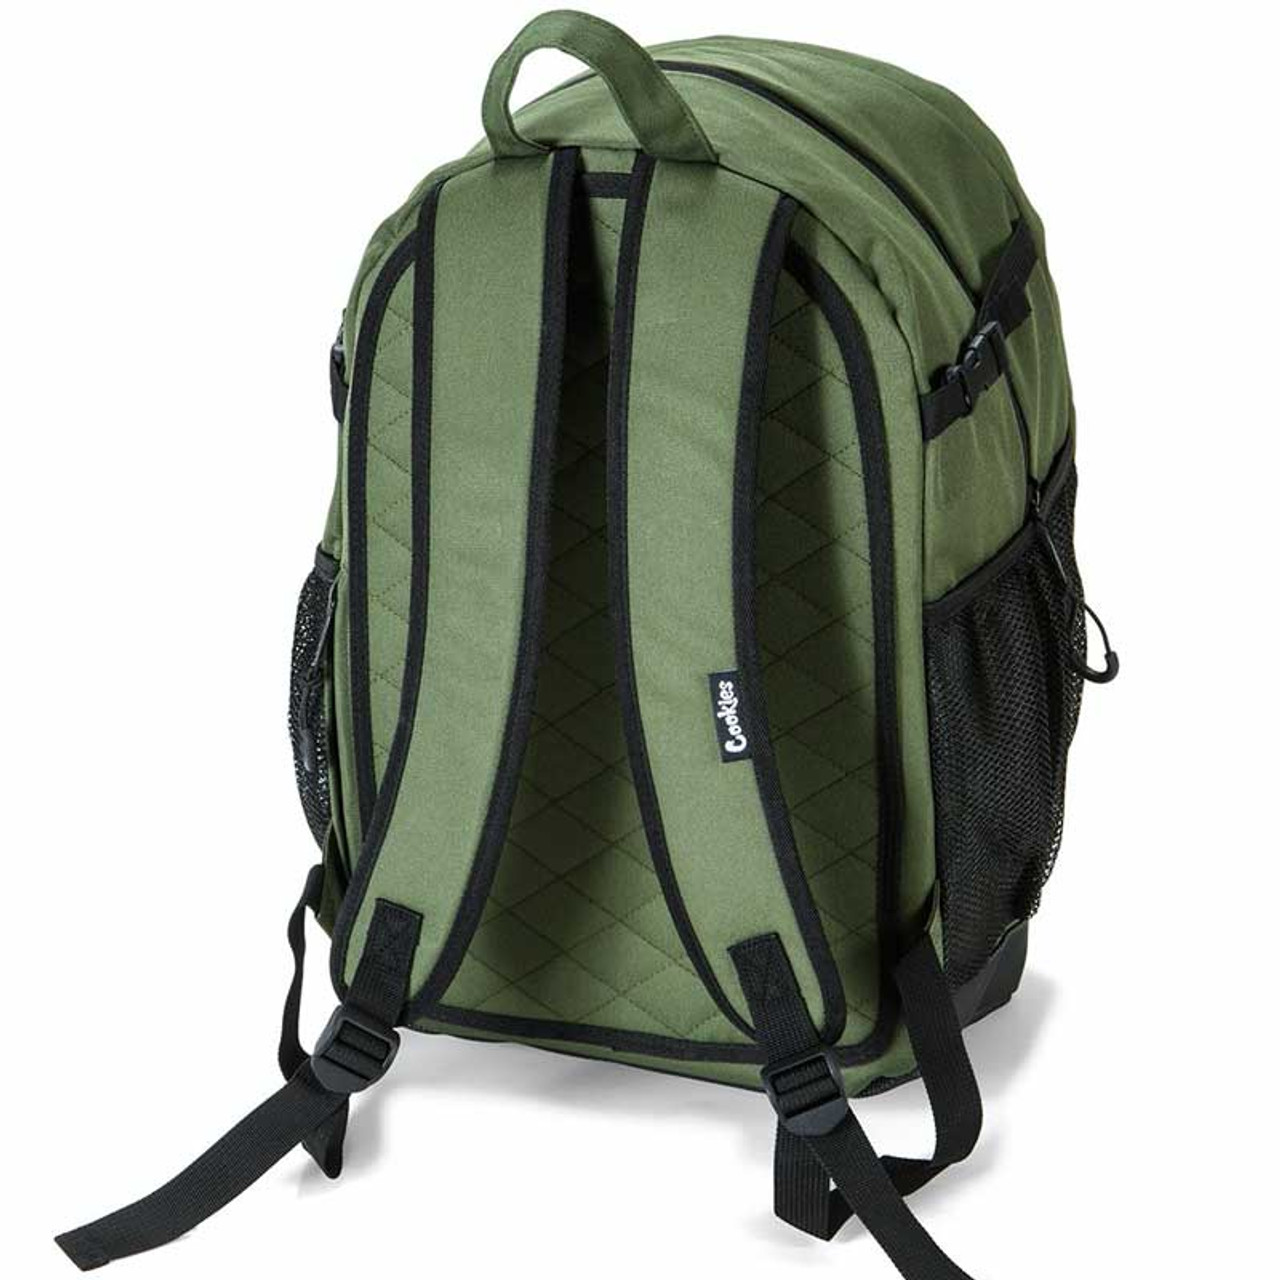 The Bungee Backpack in Olive by Cookies SF